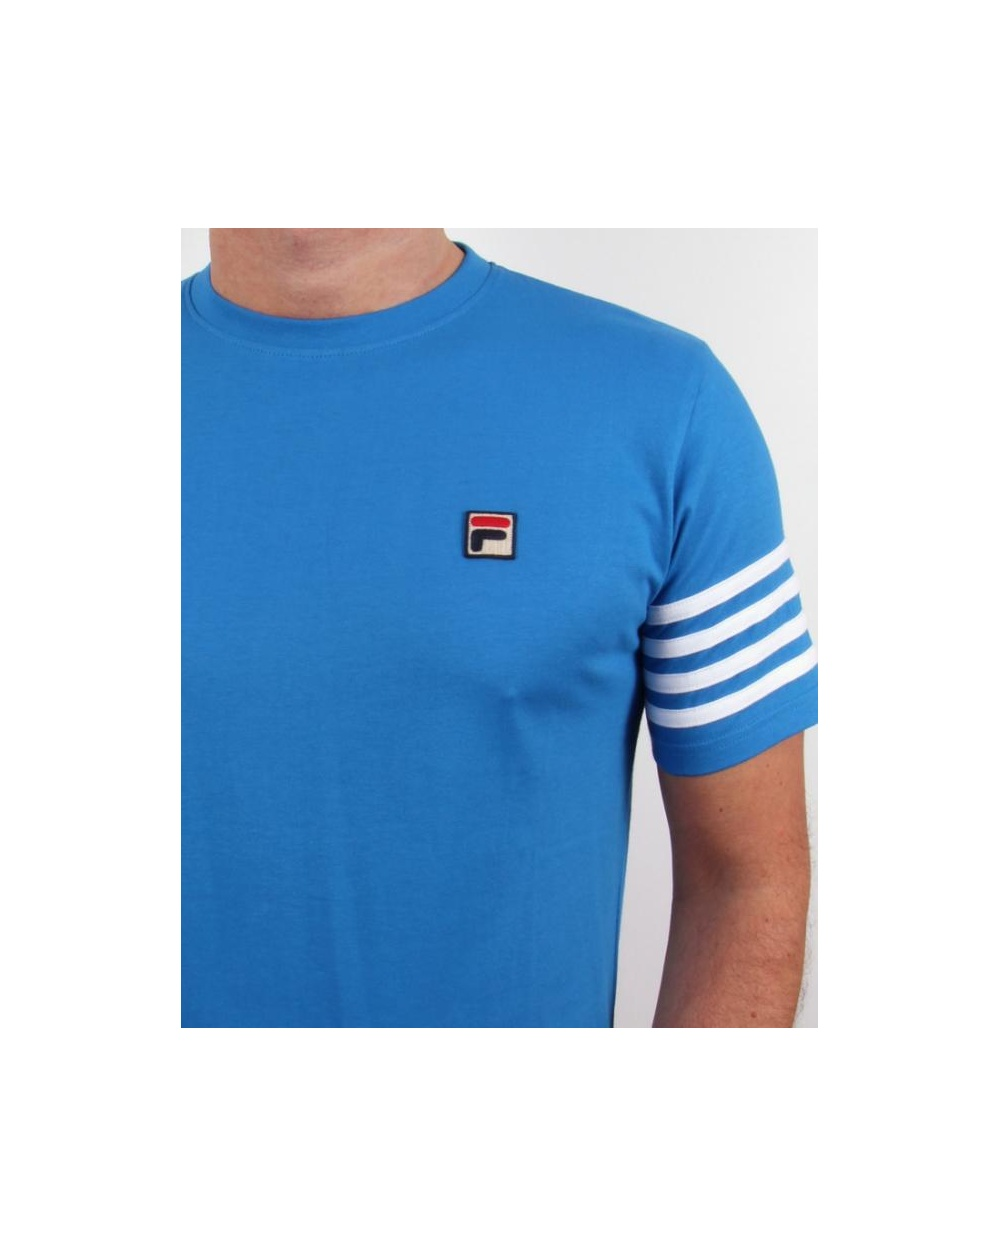 Fila vintage 4 stripe t shirt french blue crew neck for French blue t shirt